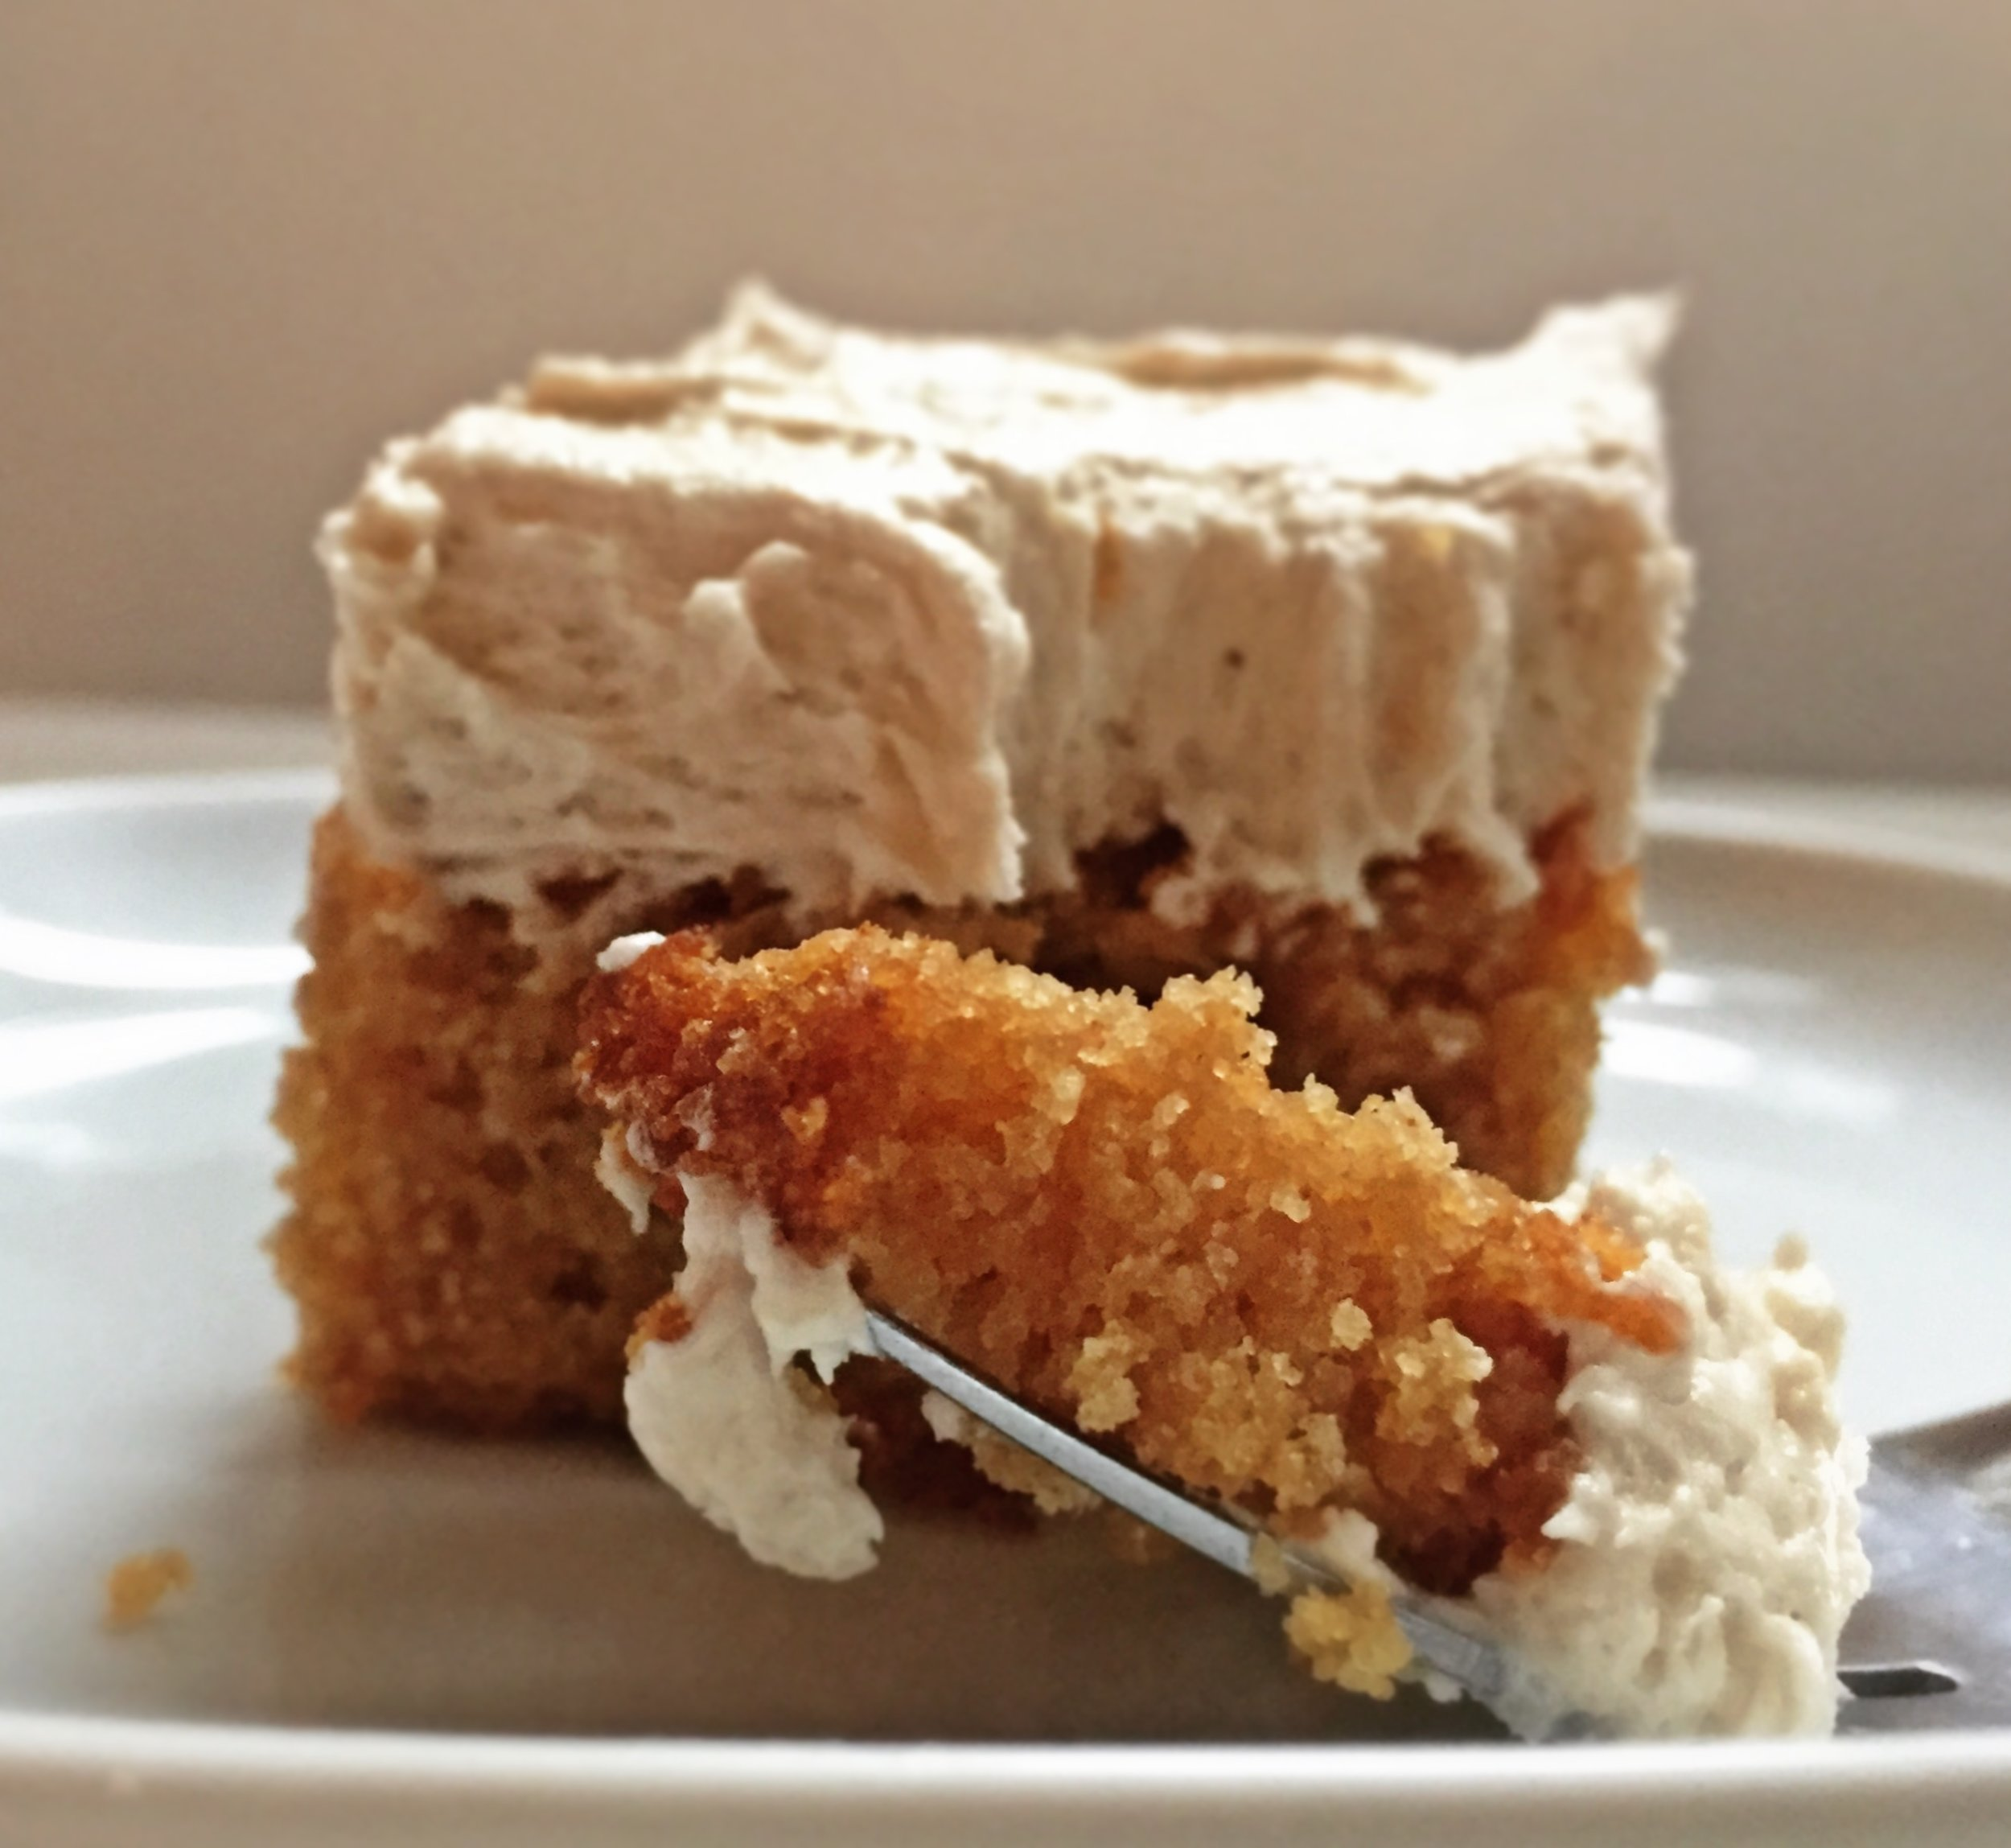 Peanut butter Cake with Banana Buttercream